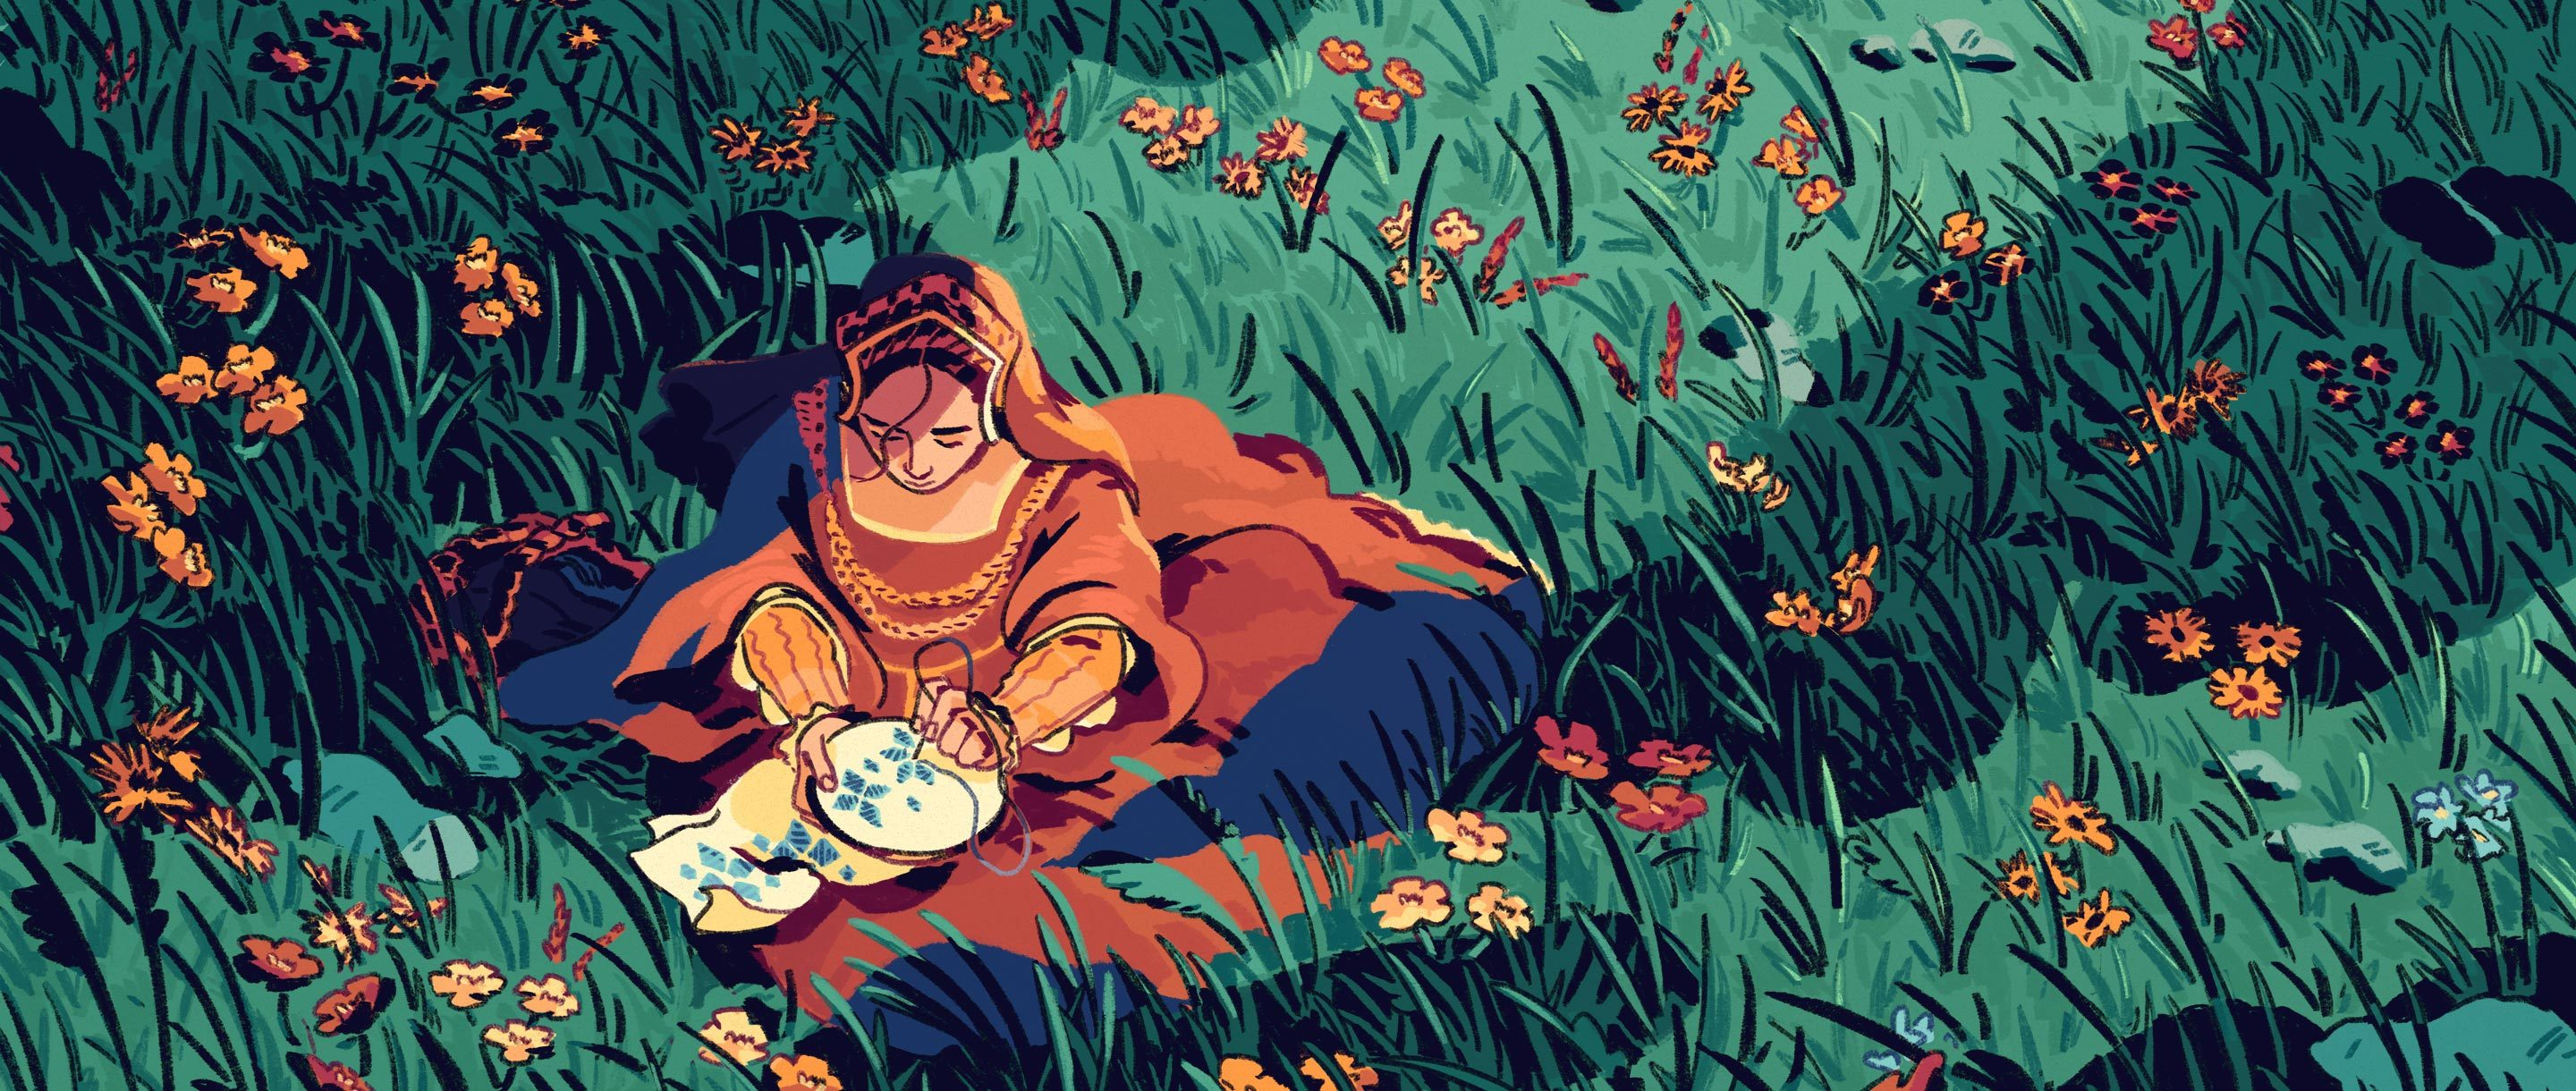 An illustration of a woman sitting in a field embroidering a flower pattern. Around her grow wildflowers that appear to be randomly distributed but whose colors reveal a hidden pattern.